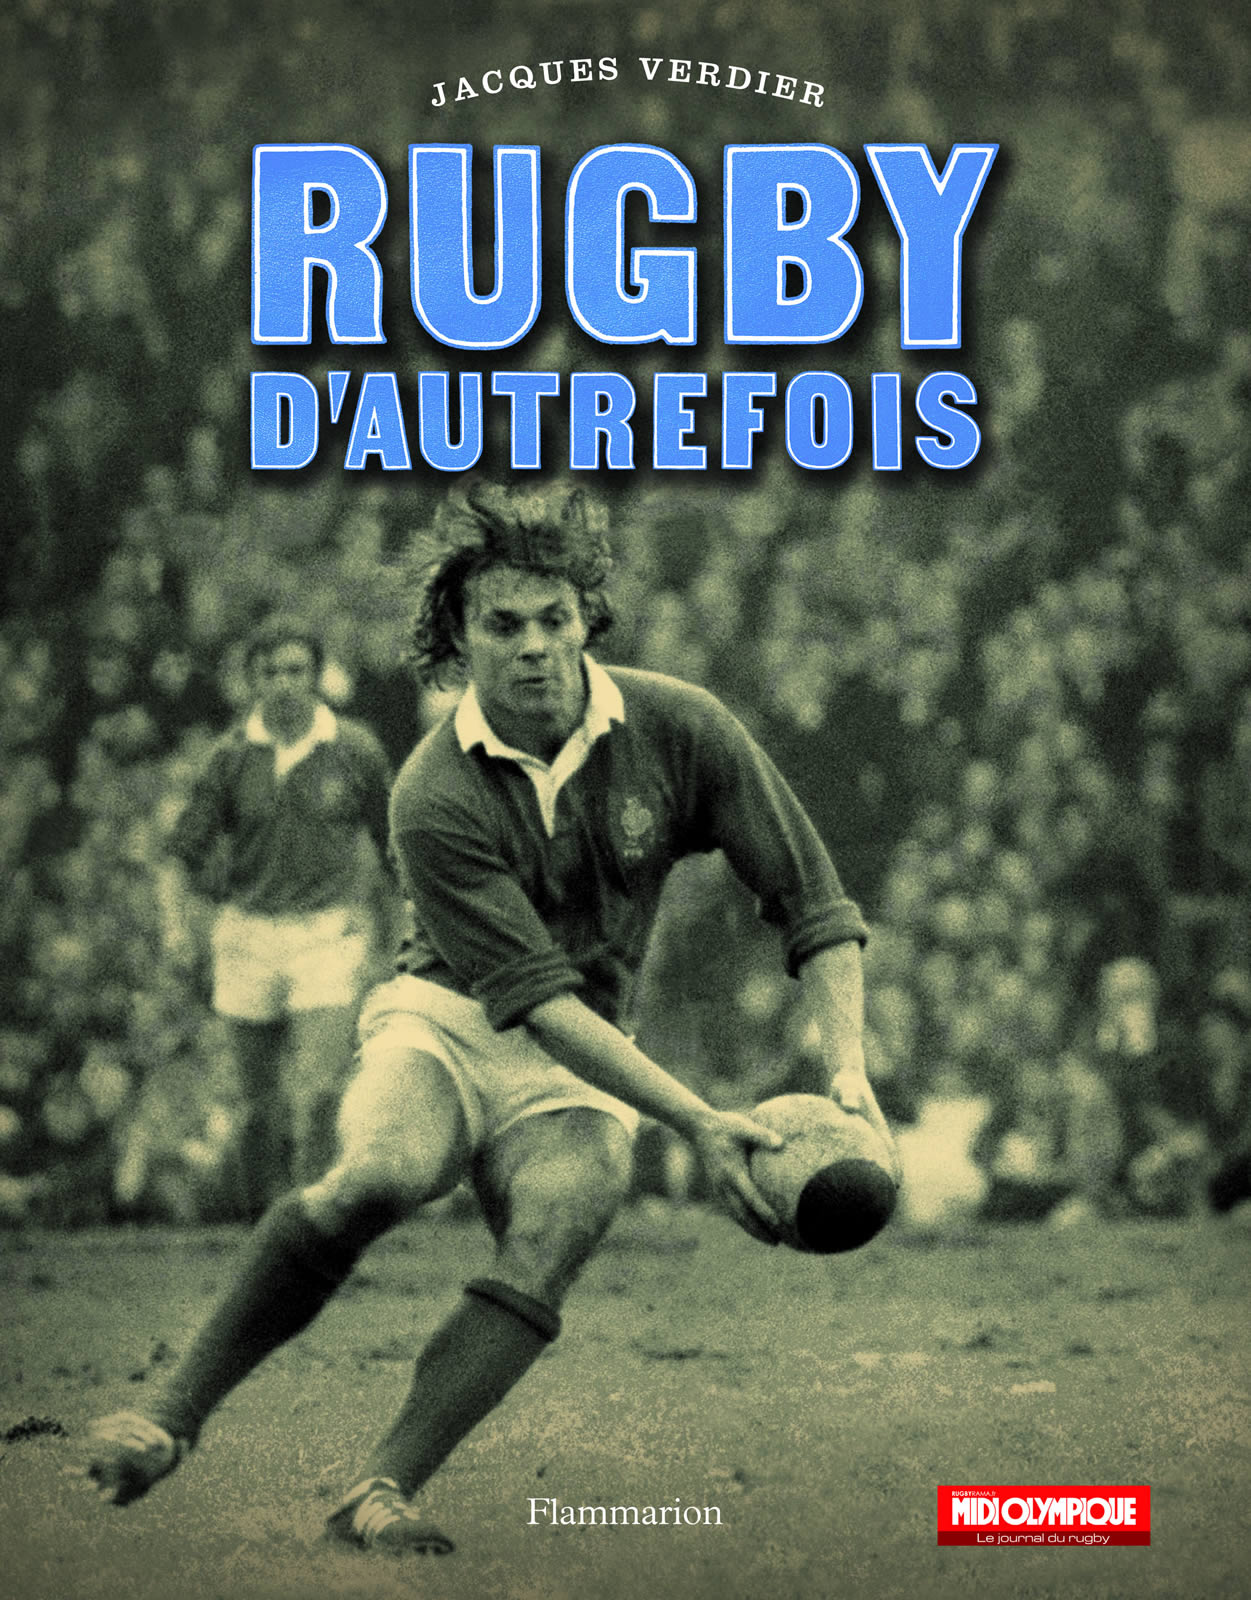 Rugby d'autrefois - The Eye of Photography Magazine